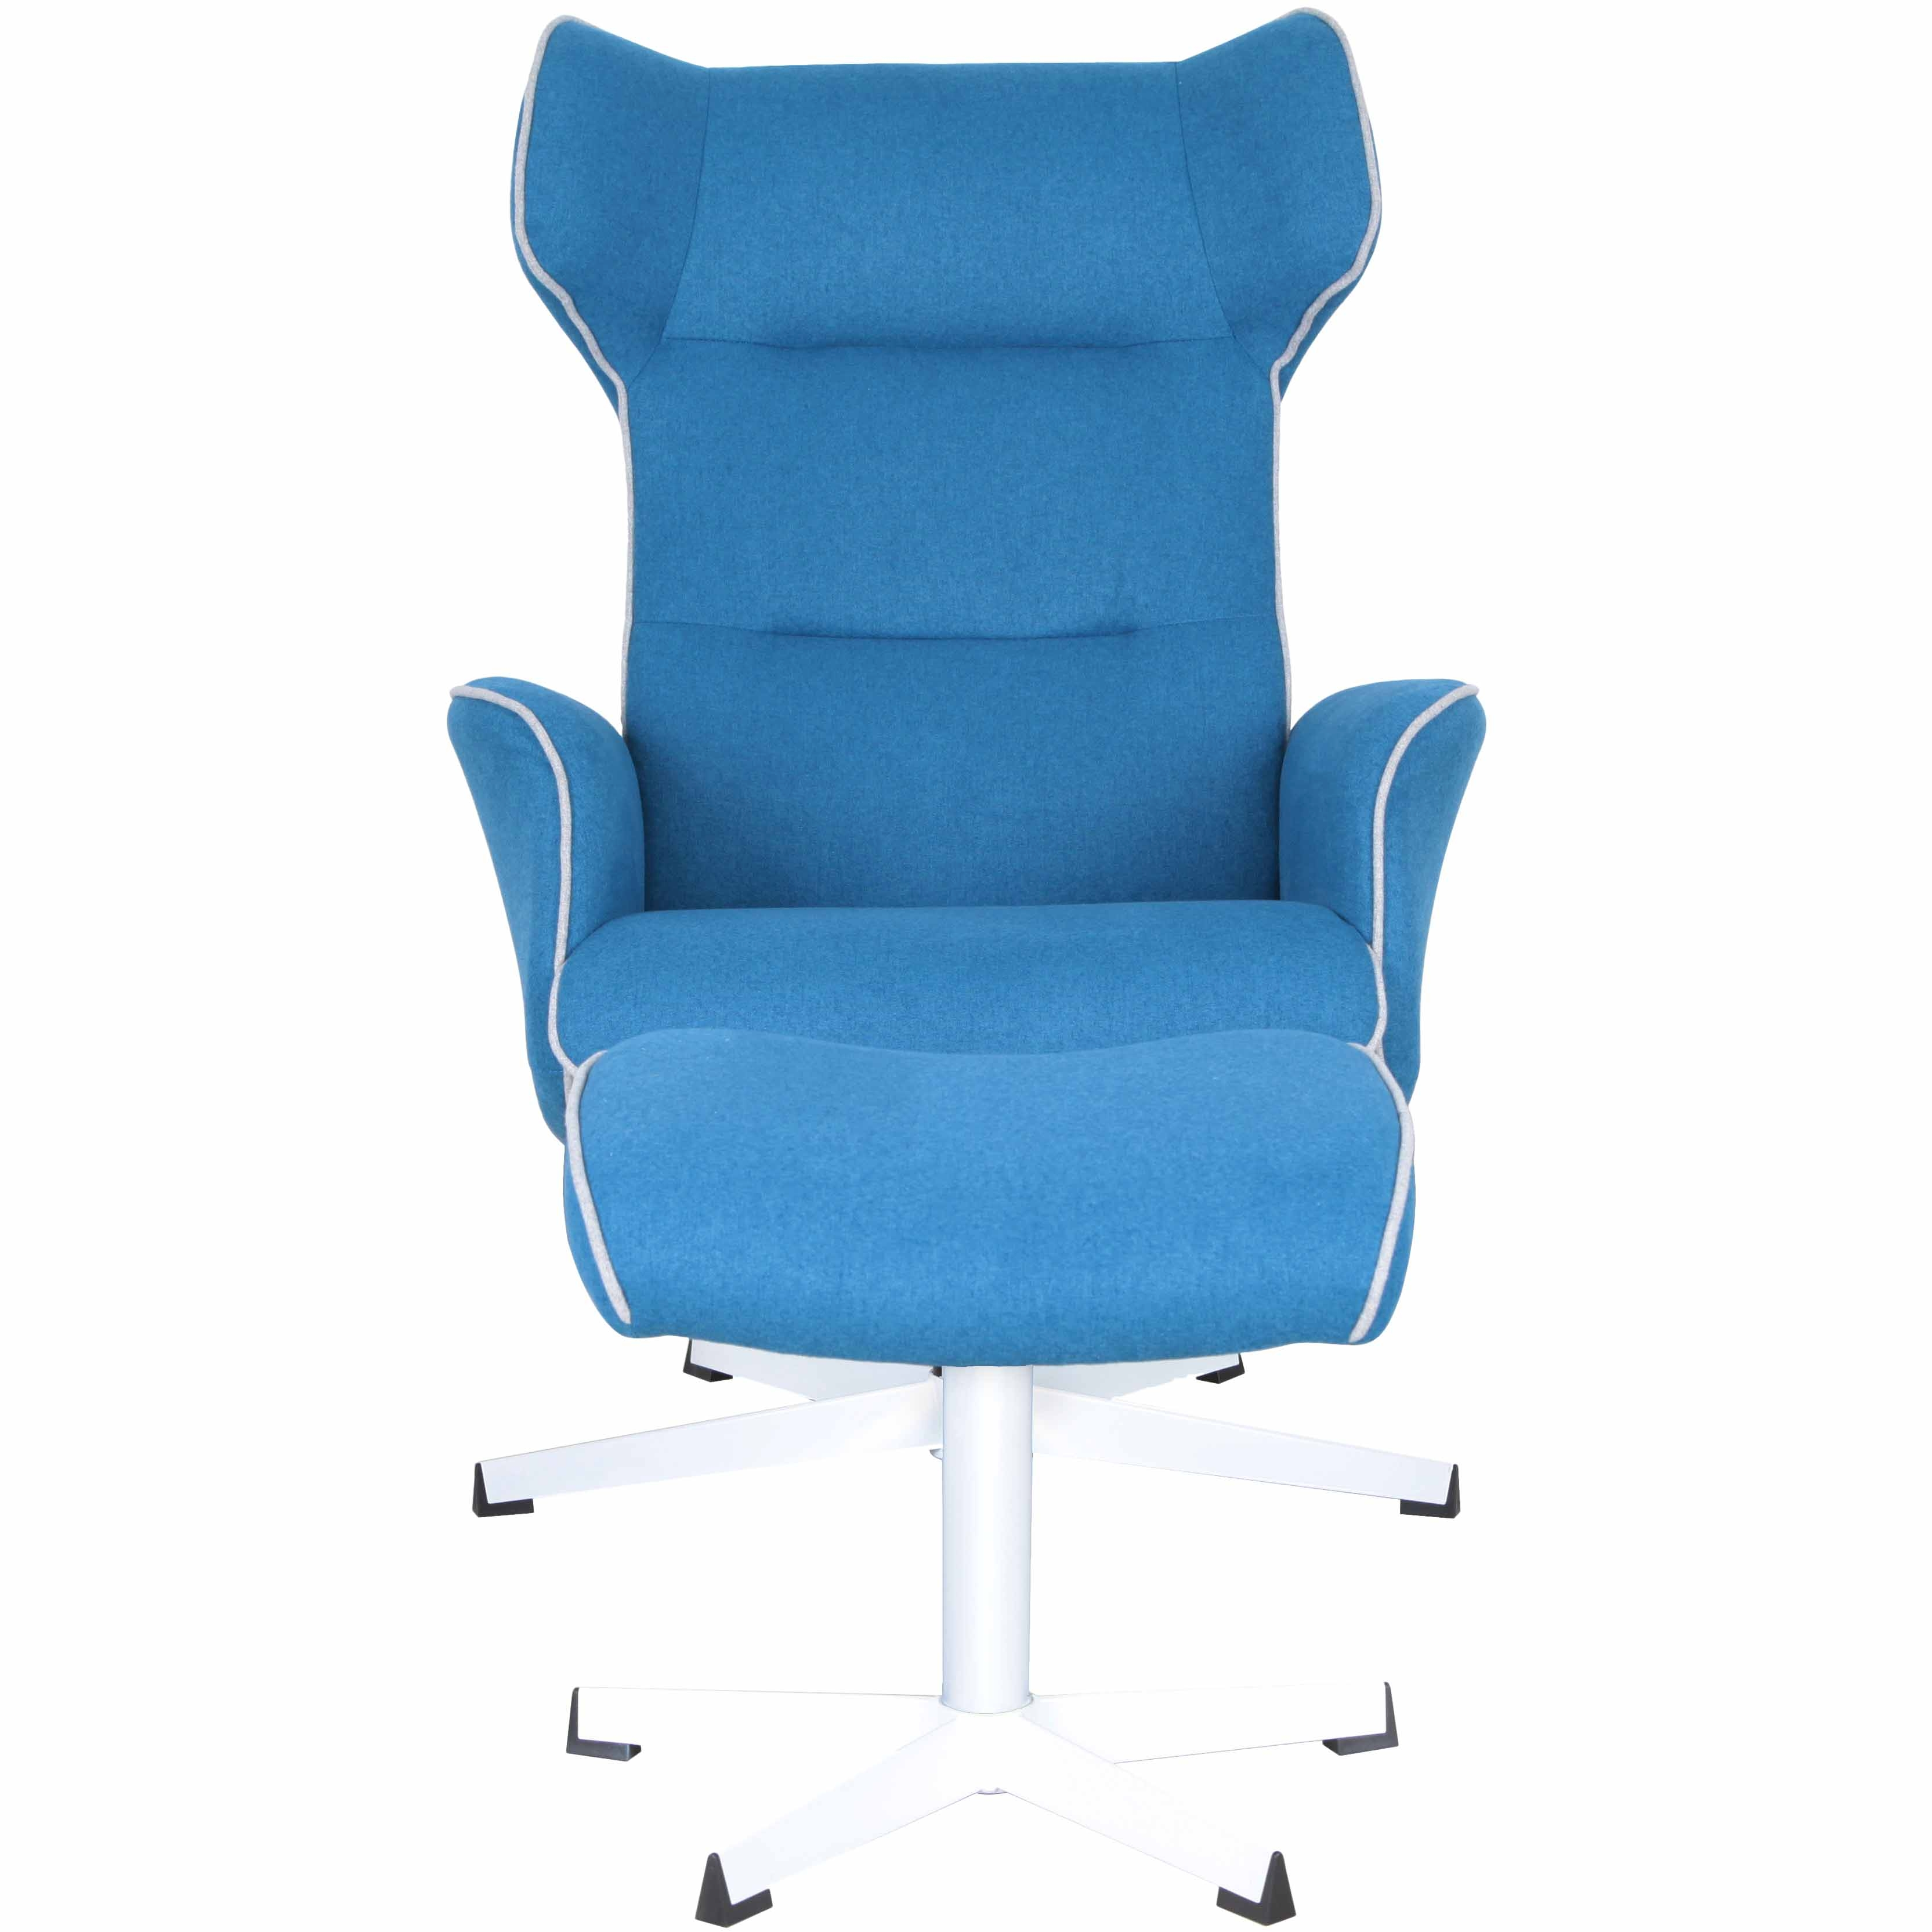 aldric fabric swivel and recliner lounge chair with ottoman white base